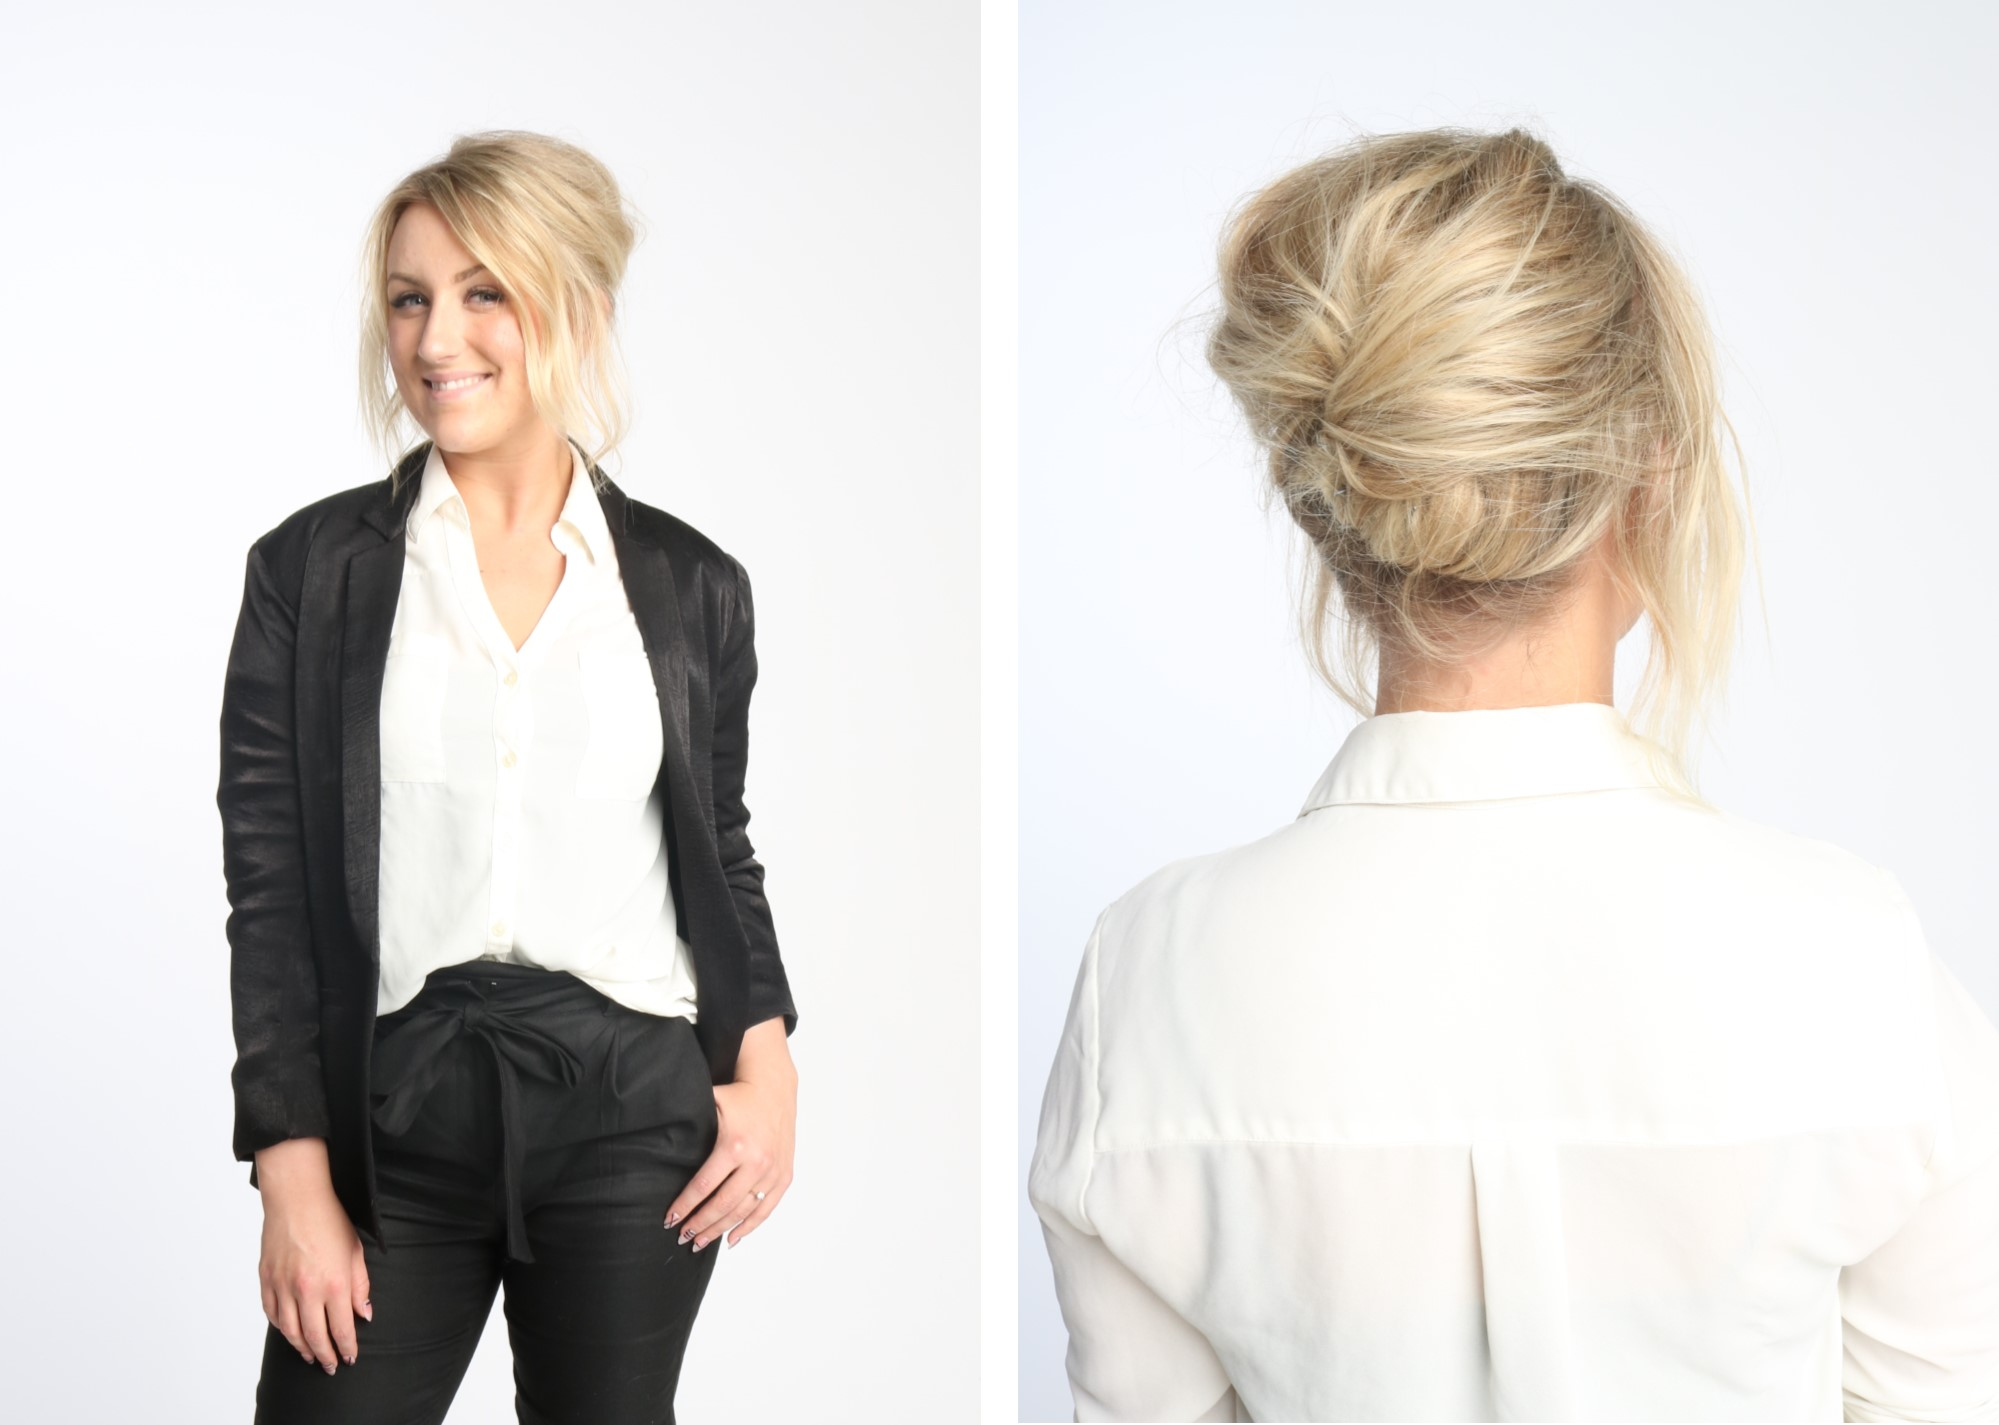 hannah, chignon, stylist, master, aveda, professional, office, hair, hairstyle, step by step